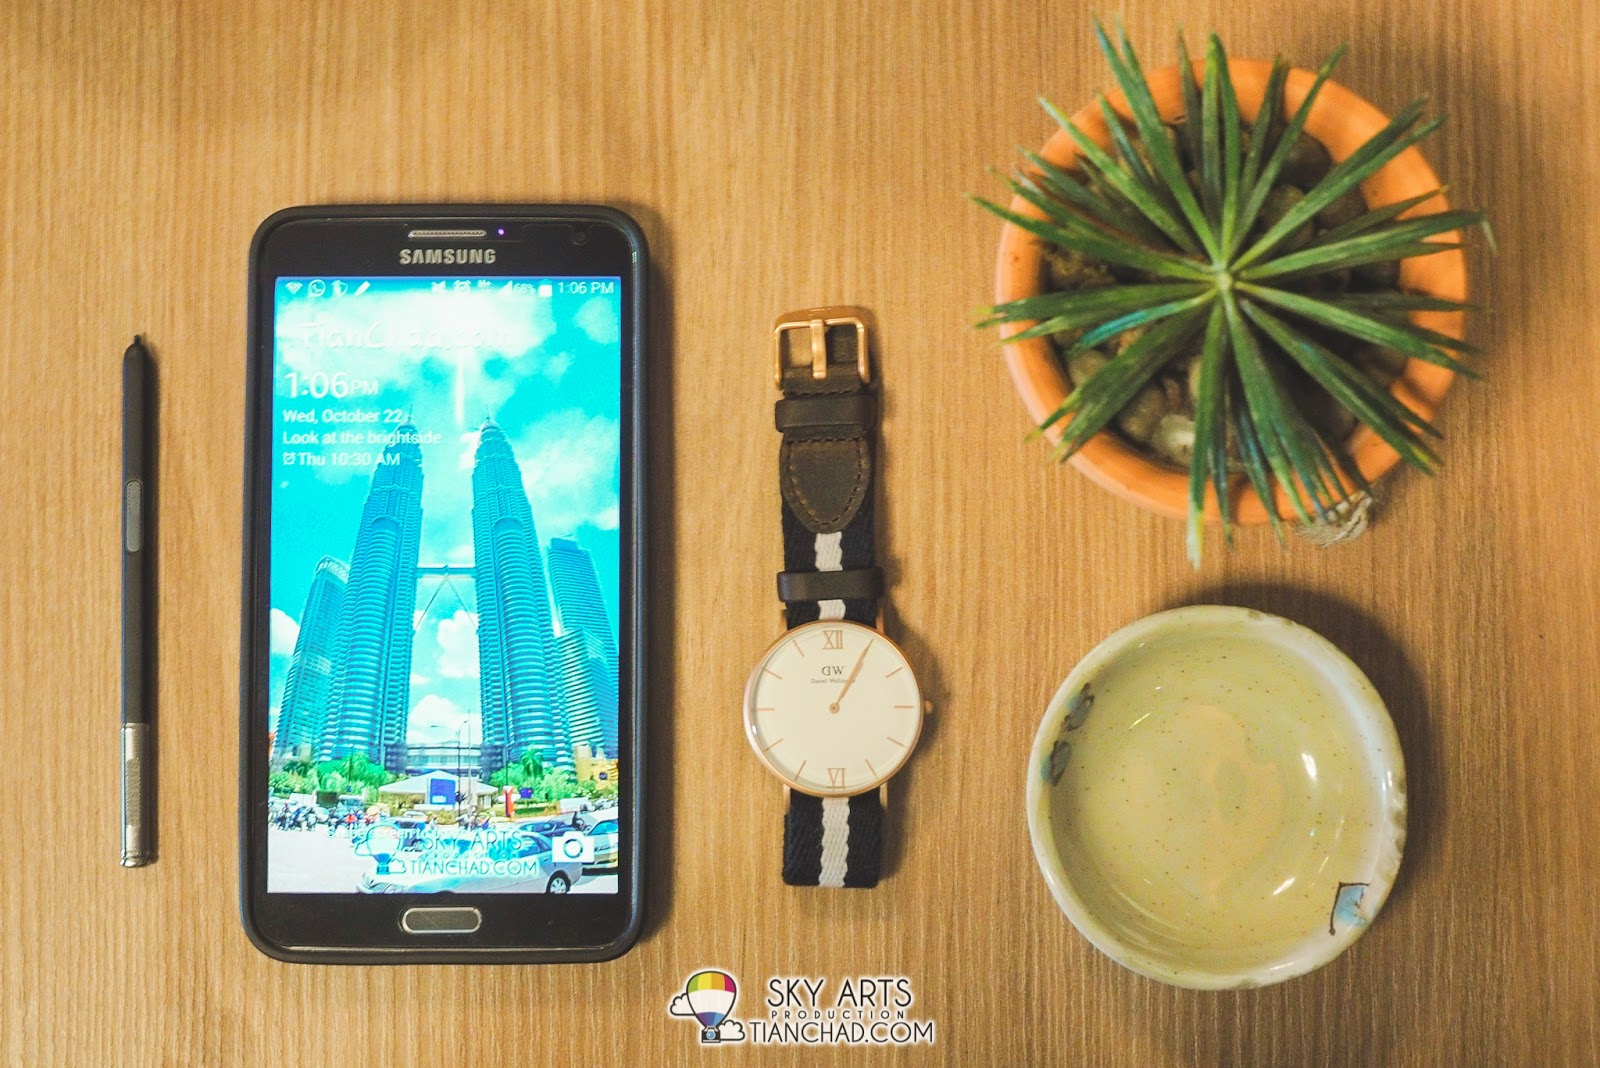 #OOTD Samsung Galaxy Note 3 with Daniel Wellington Watche taken at Tokyo  Kitchen. Love their props on the table